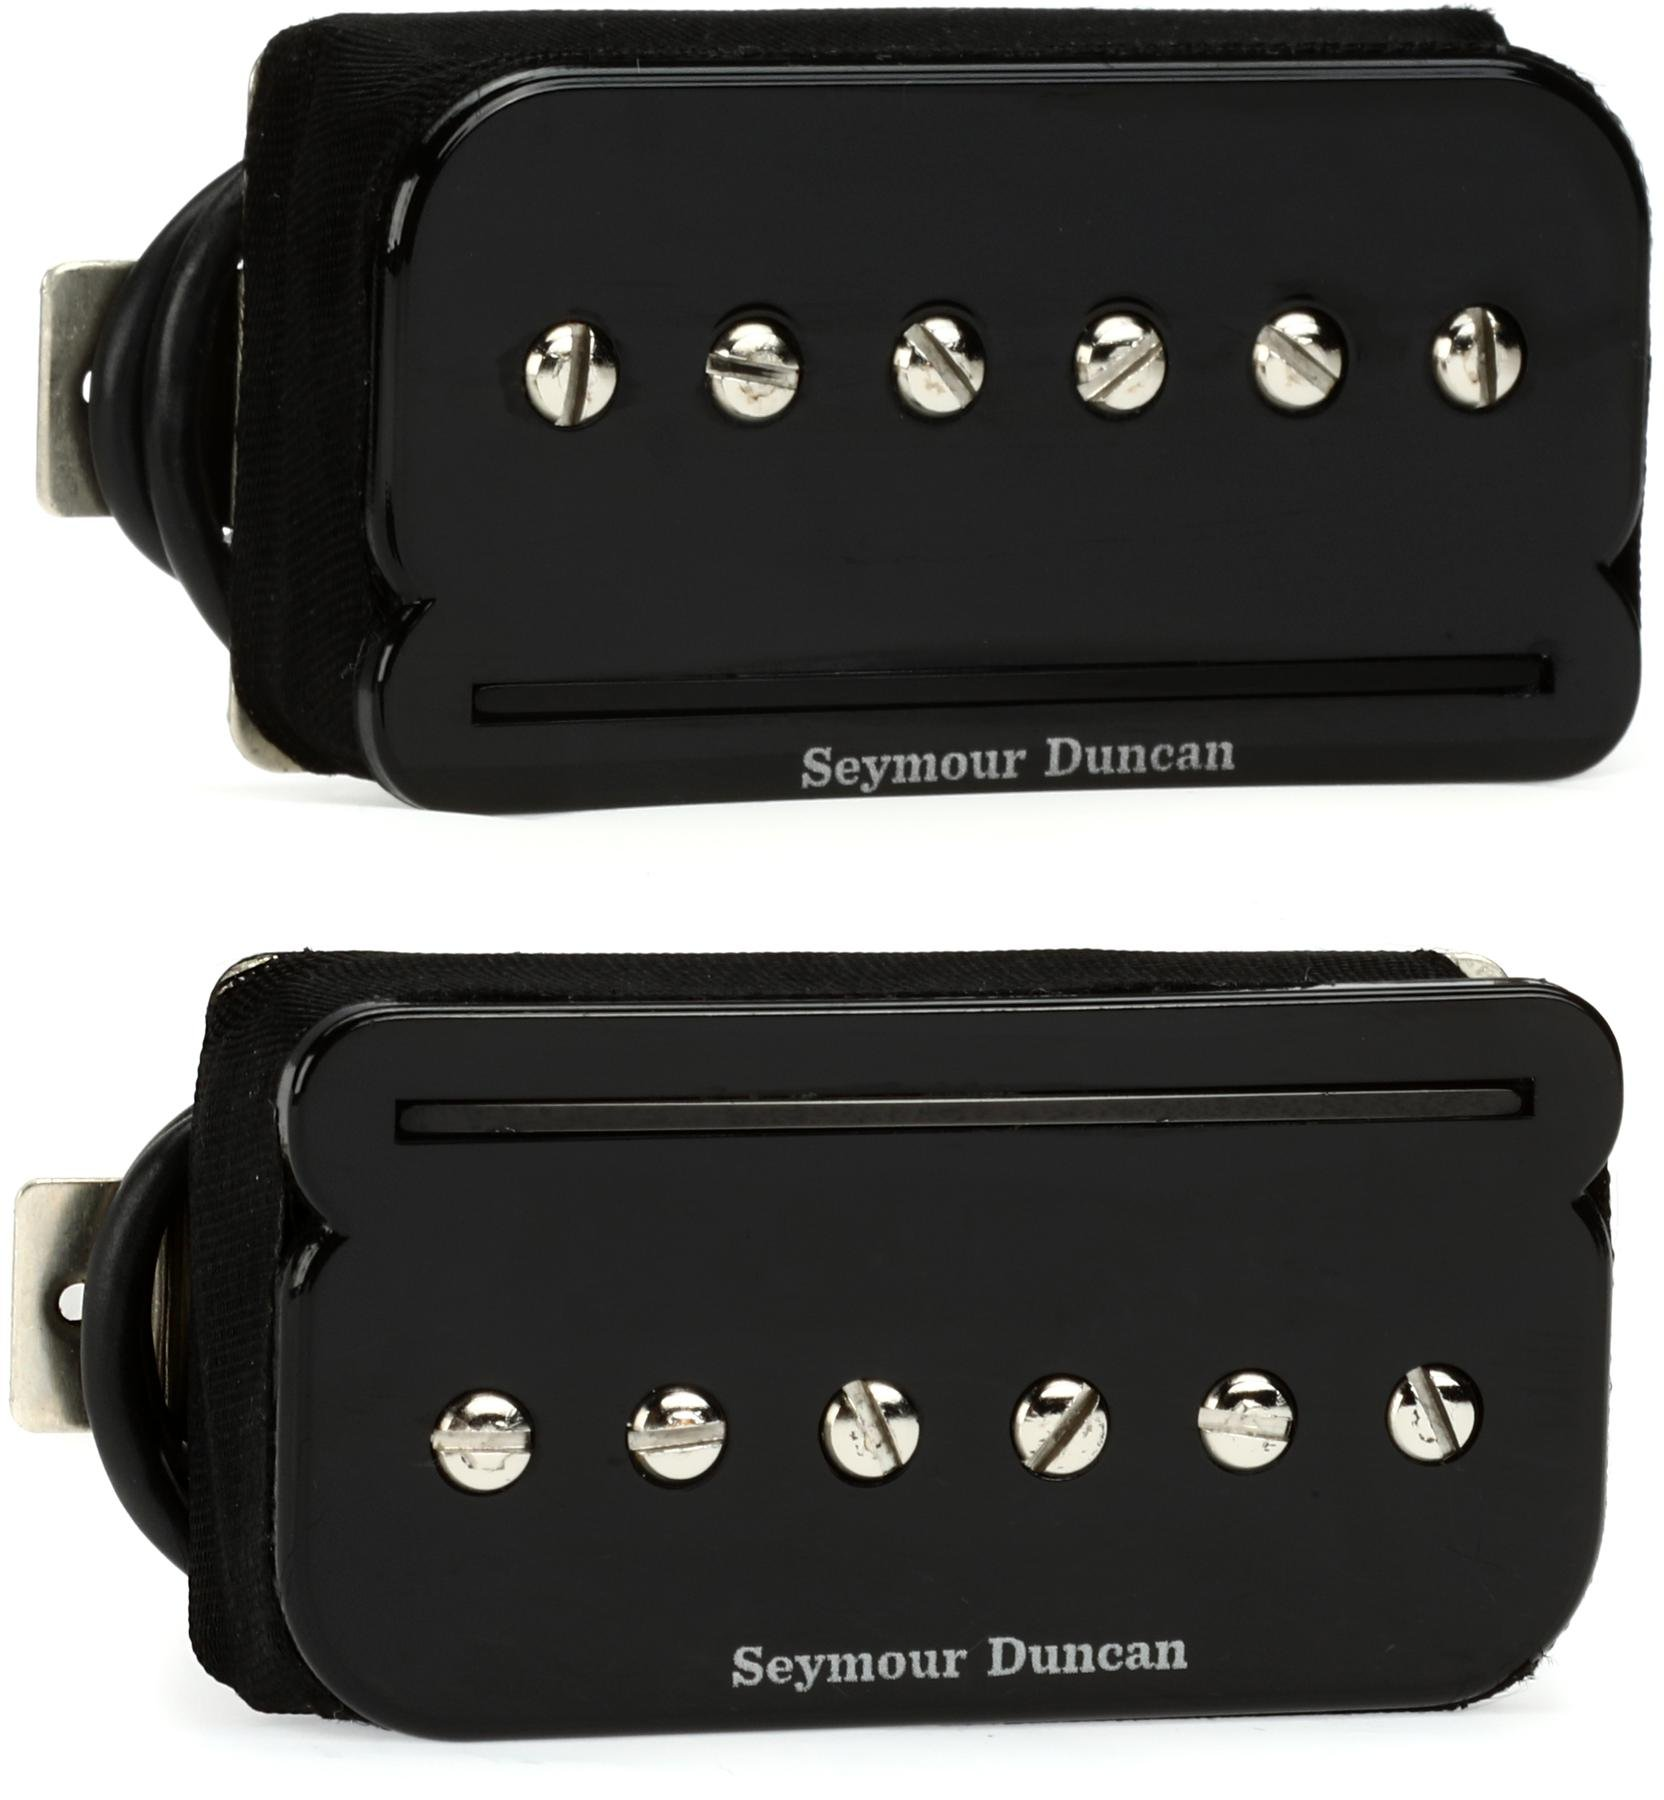 Seymour Duncan Shpr 1s P Rails Pickup Set Sweetwater Used Gibsonstyle Humbucking W Wiring Pots Switch And Image 1